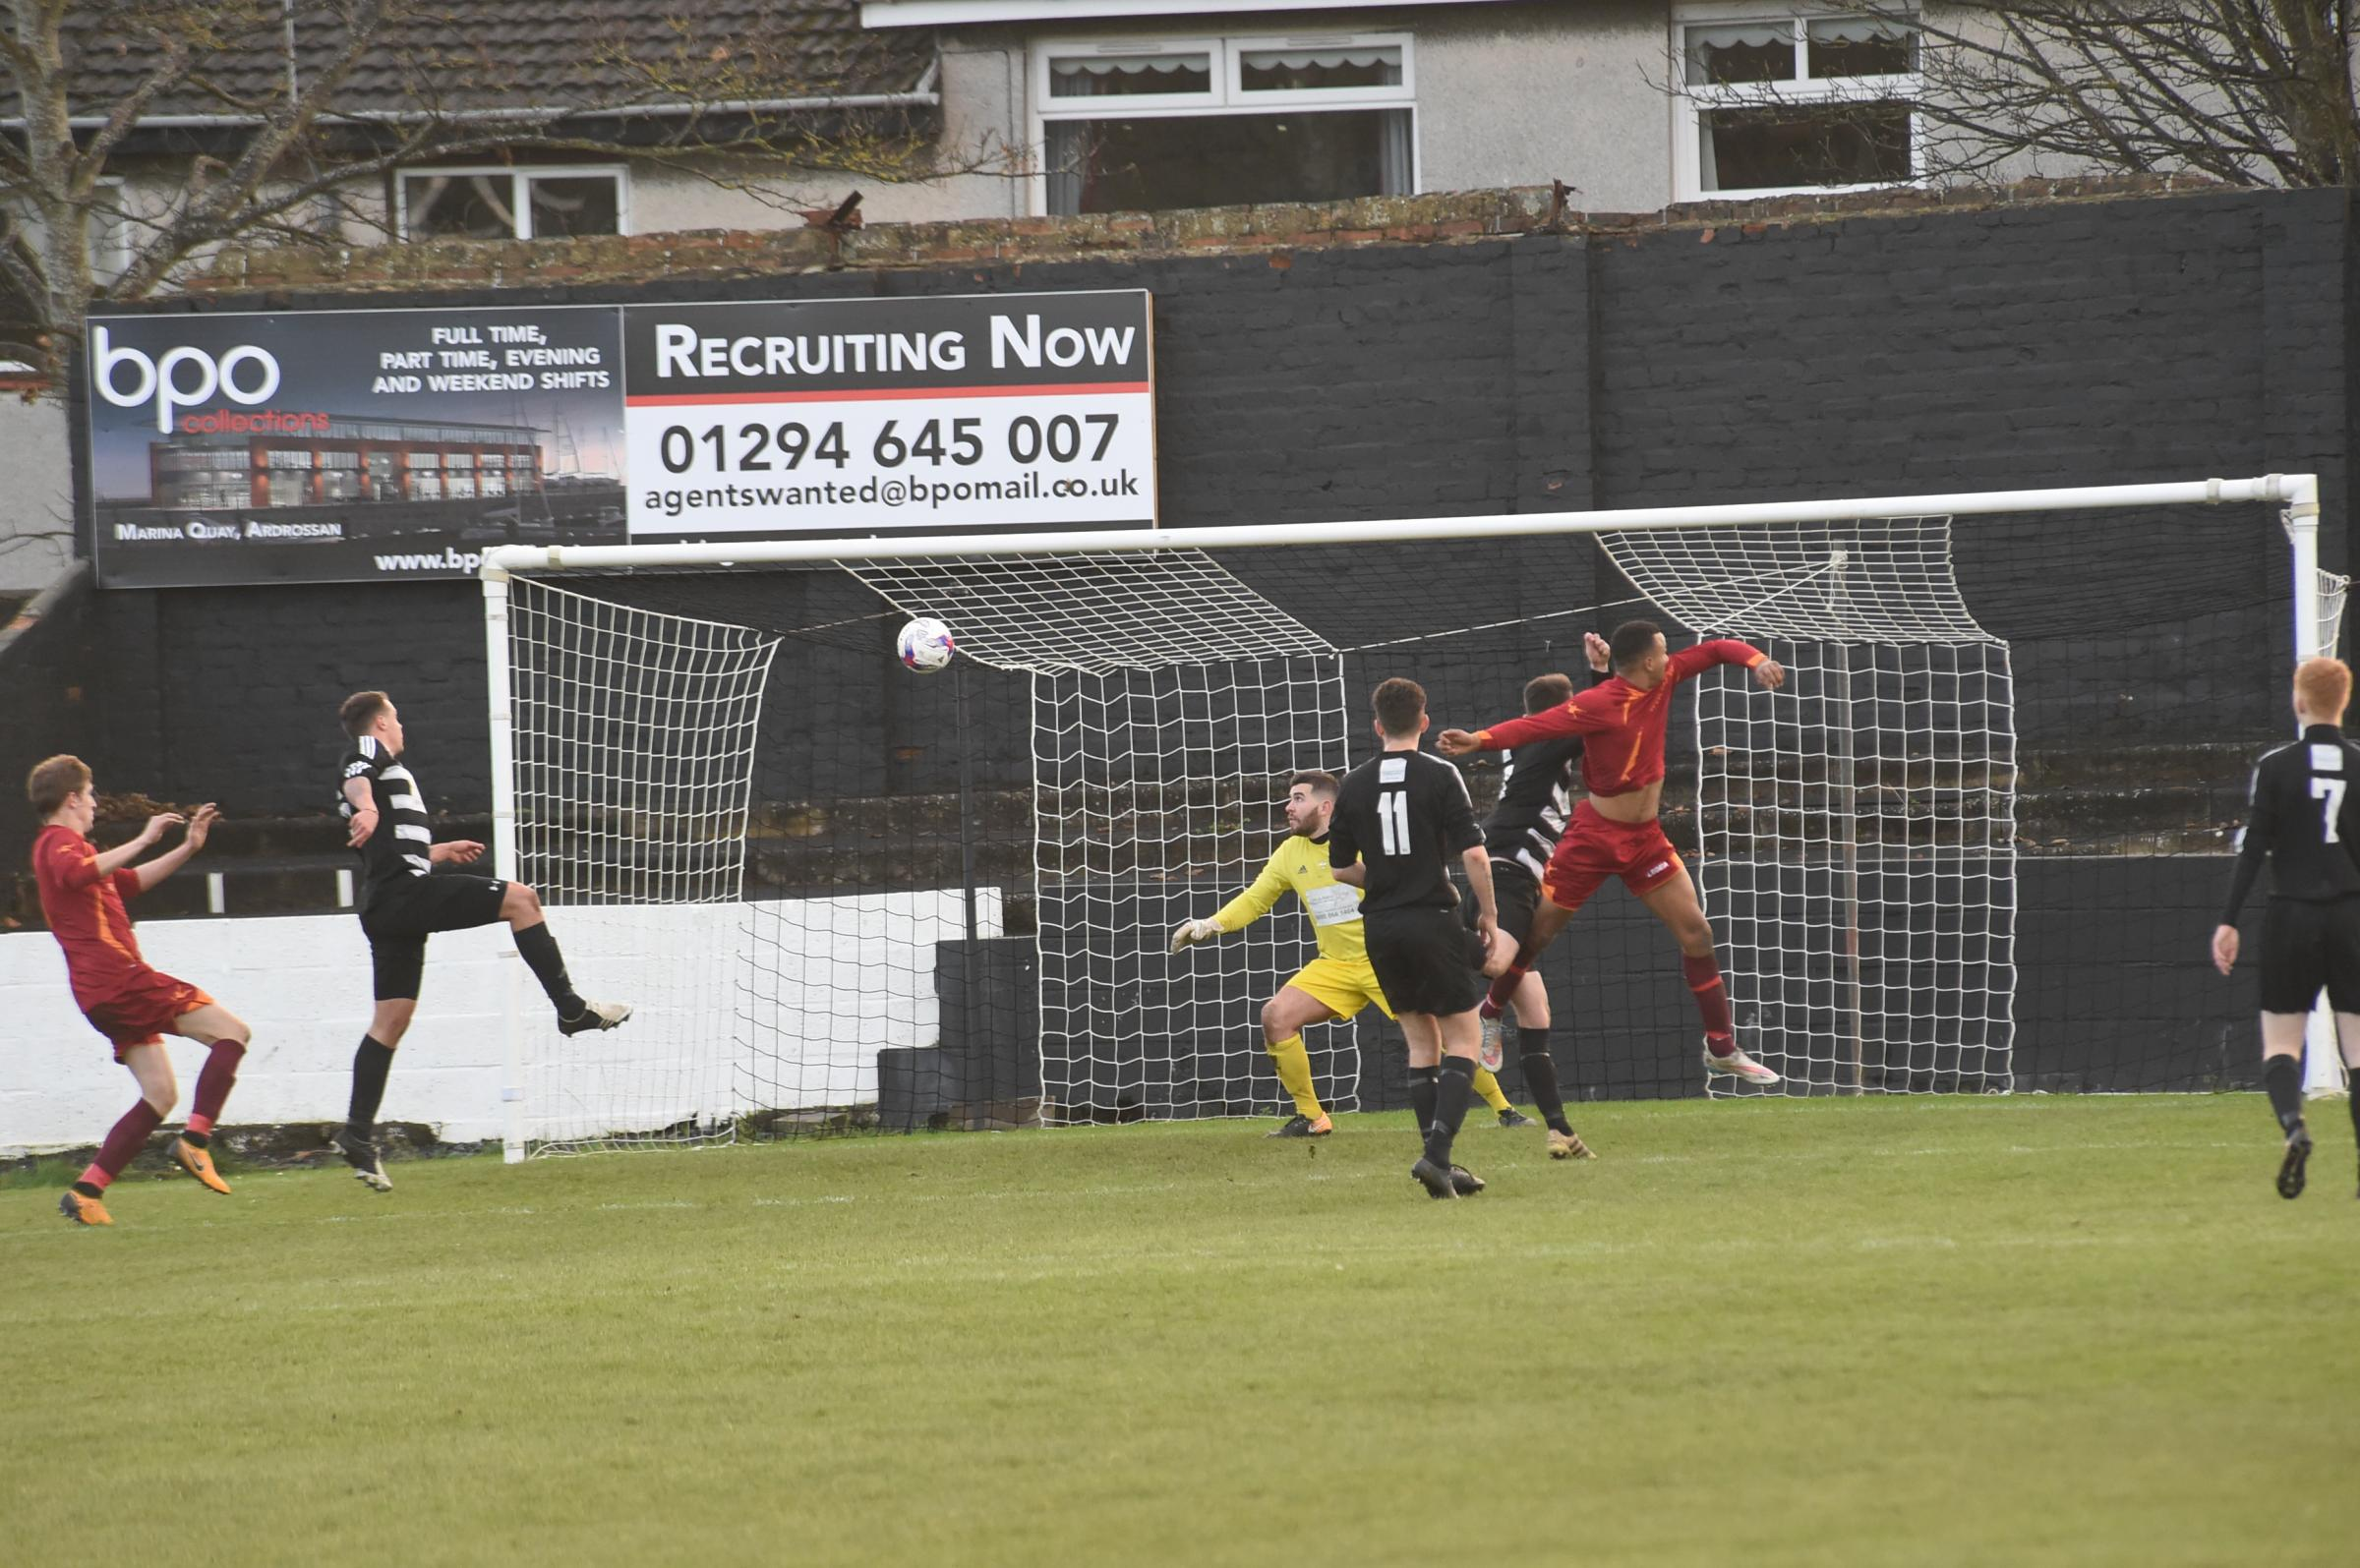 LEAD DOUBLED: Dominik Chiedu heads Saltcoats Vics into a 2-0 lead at Winton Park.